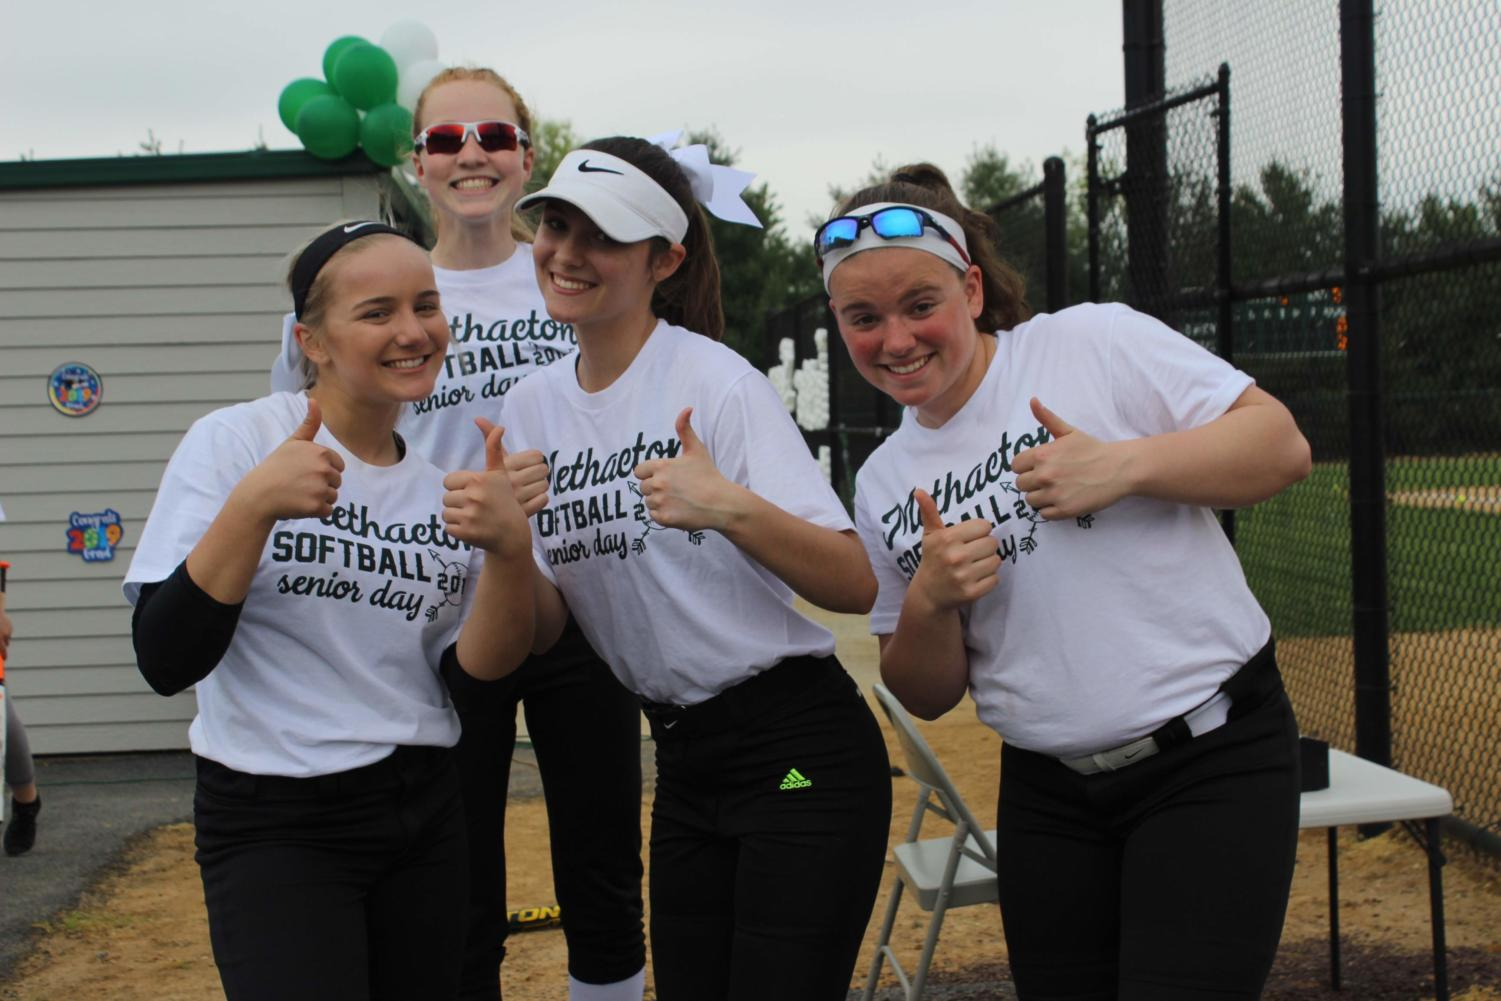 %28from+left%29+Olivia+Terry%2C+Aly+Markley%2C+Haley+Chapman+and+Caroline+Newman+give+a+thumbs+up+before+their+game+against+Pottstown.%0A